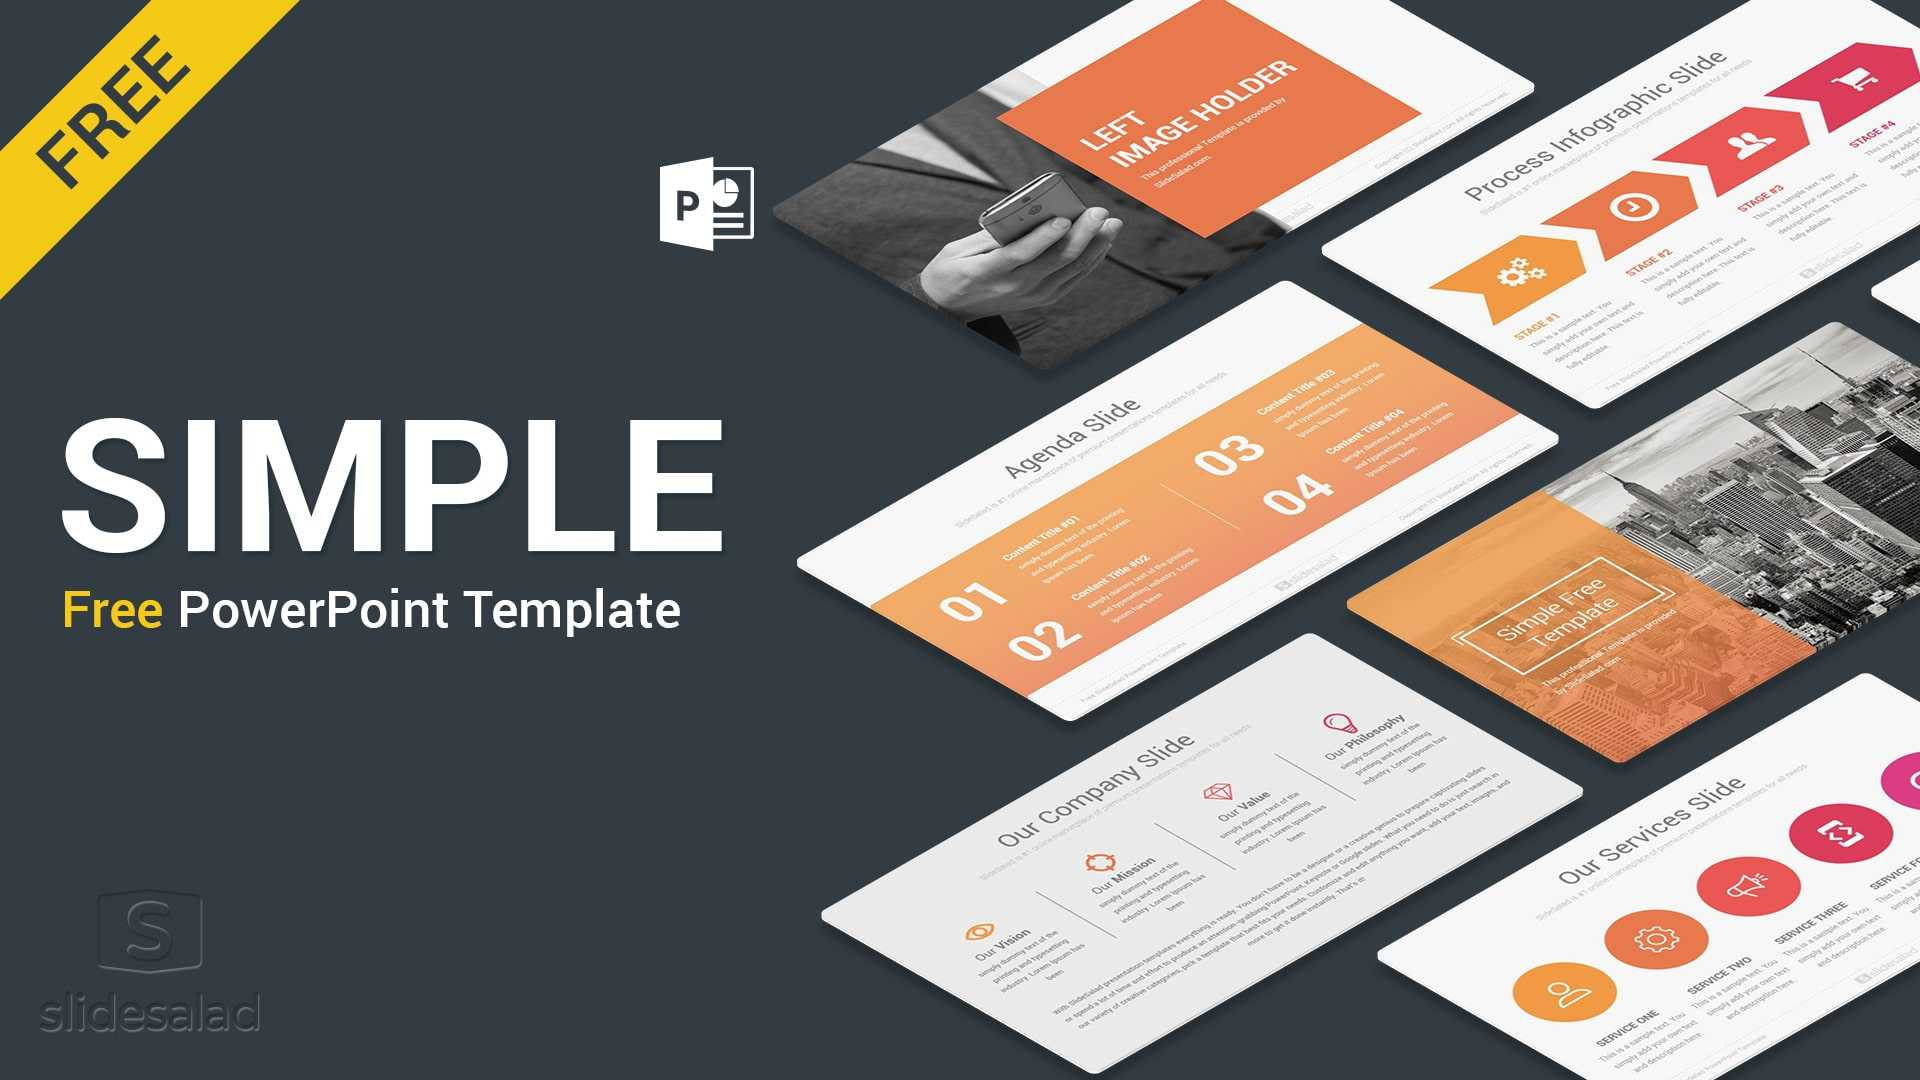 Best Free Presentation Templates Professional Designs 2019 intended for Business Card Template Powerpoint Free